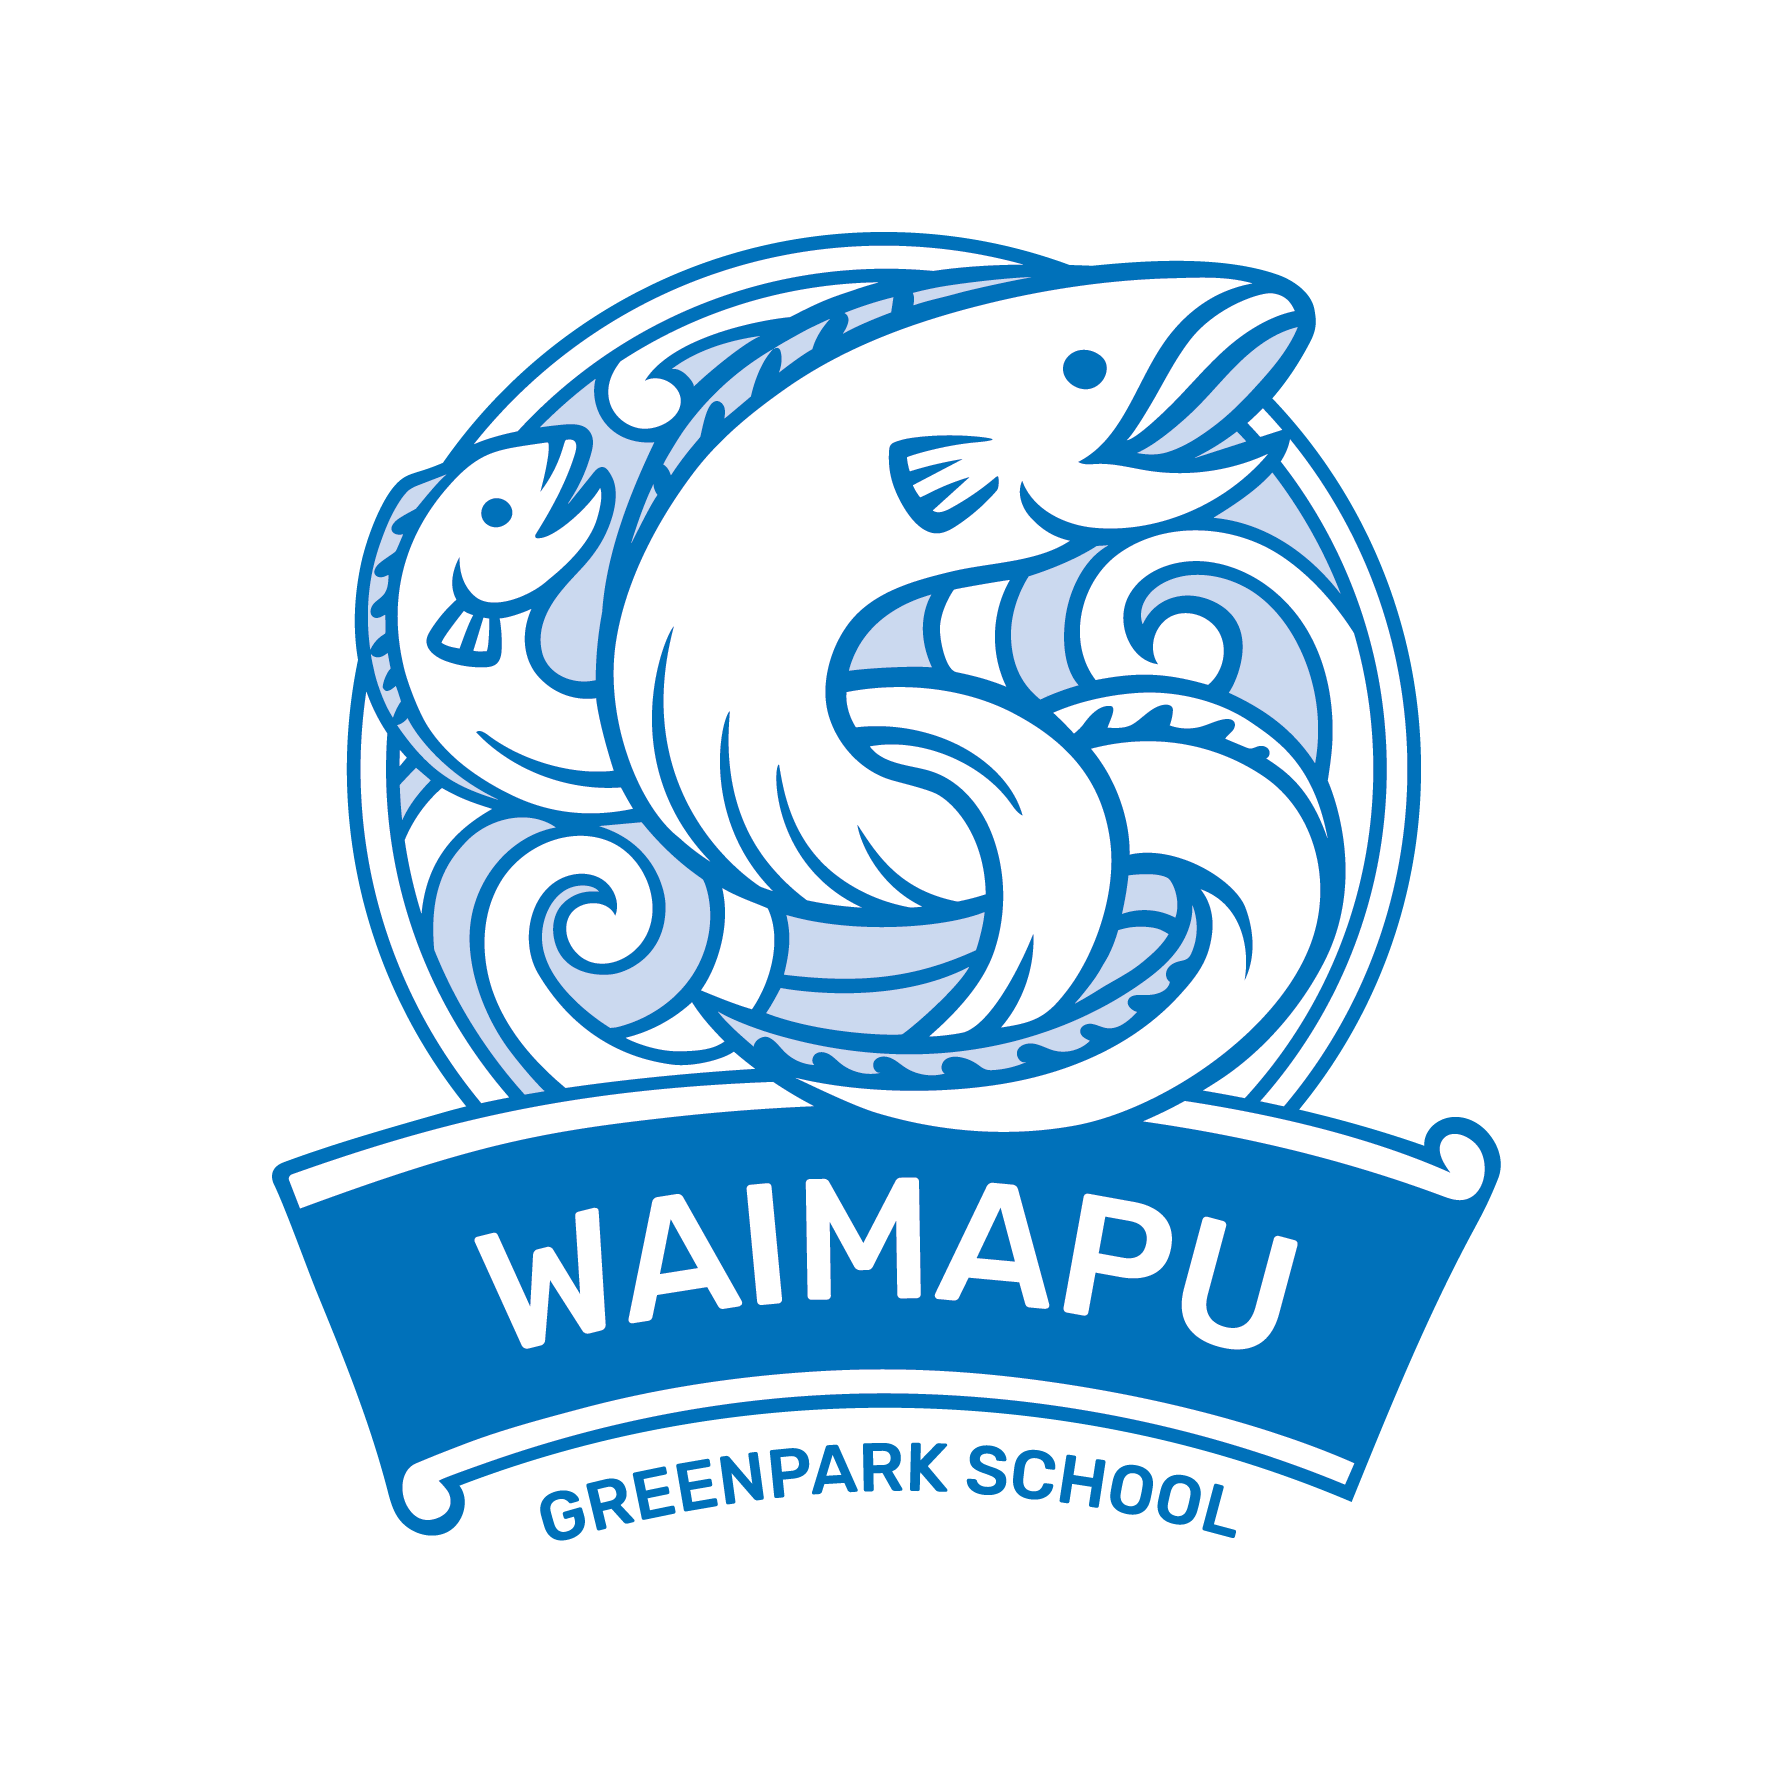 Greenpark School House logo_Waimapu.png